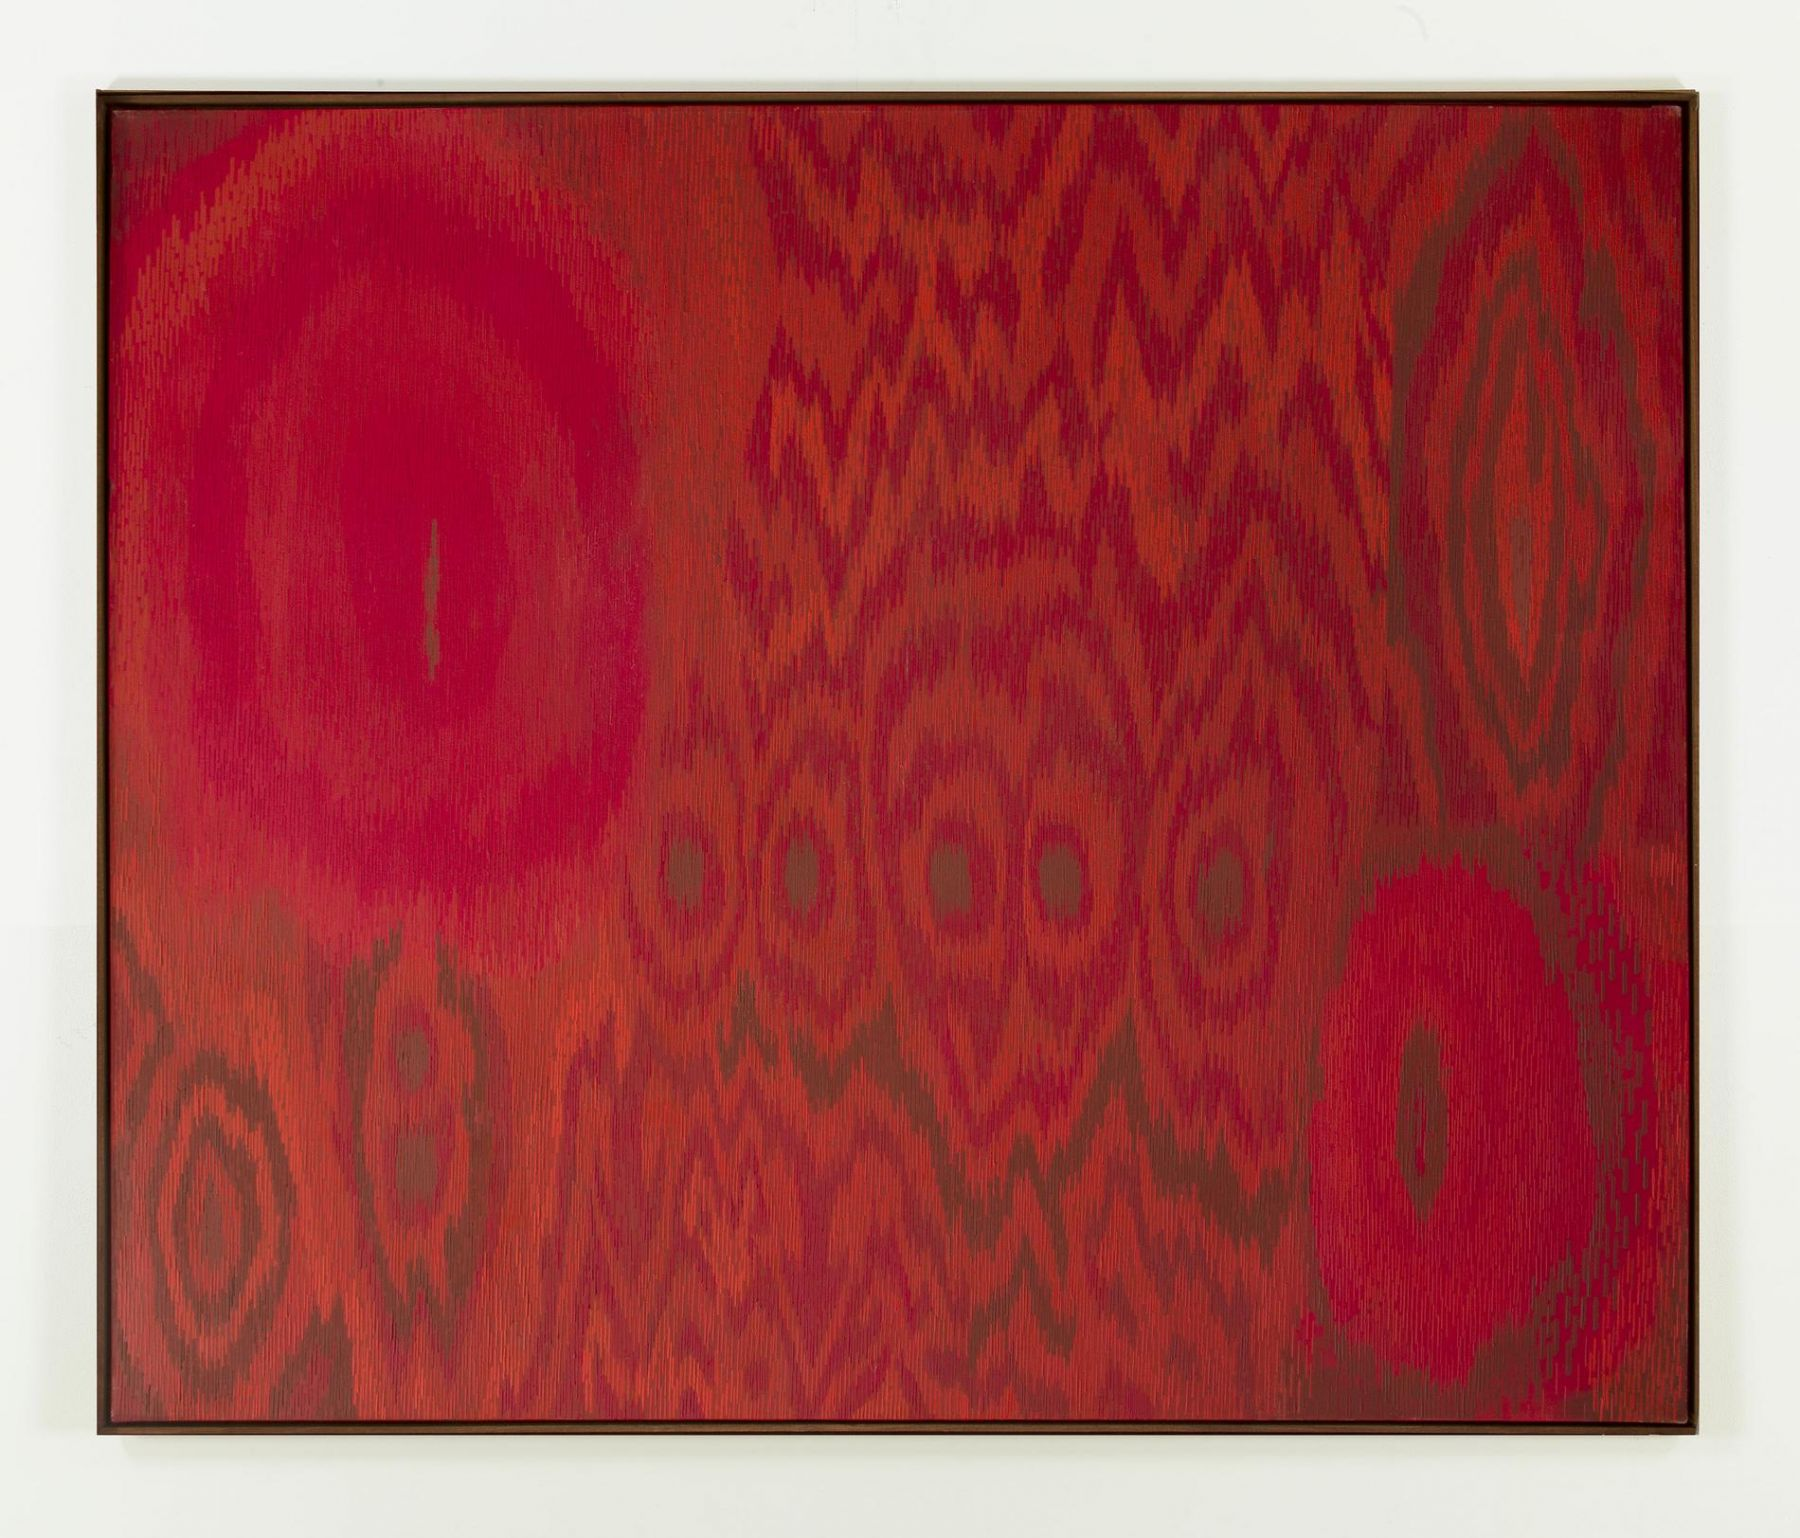 , LEE MULLICAN, Threaded Red, 1962, Oil on canvas, 50 x 60 in.